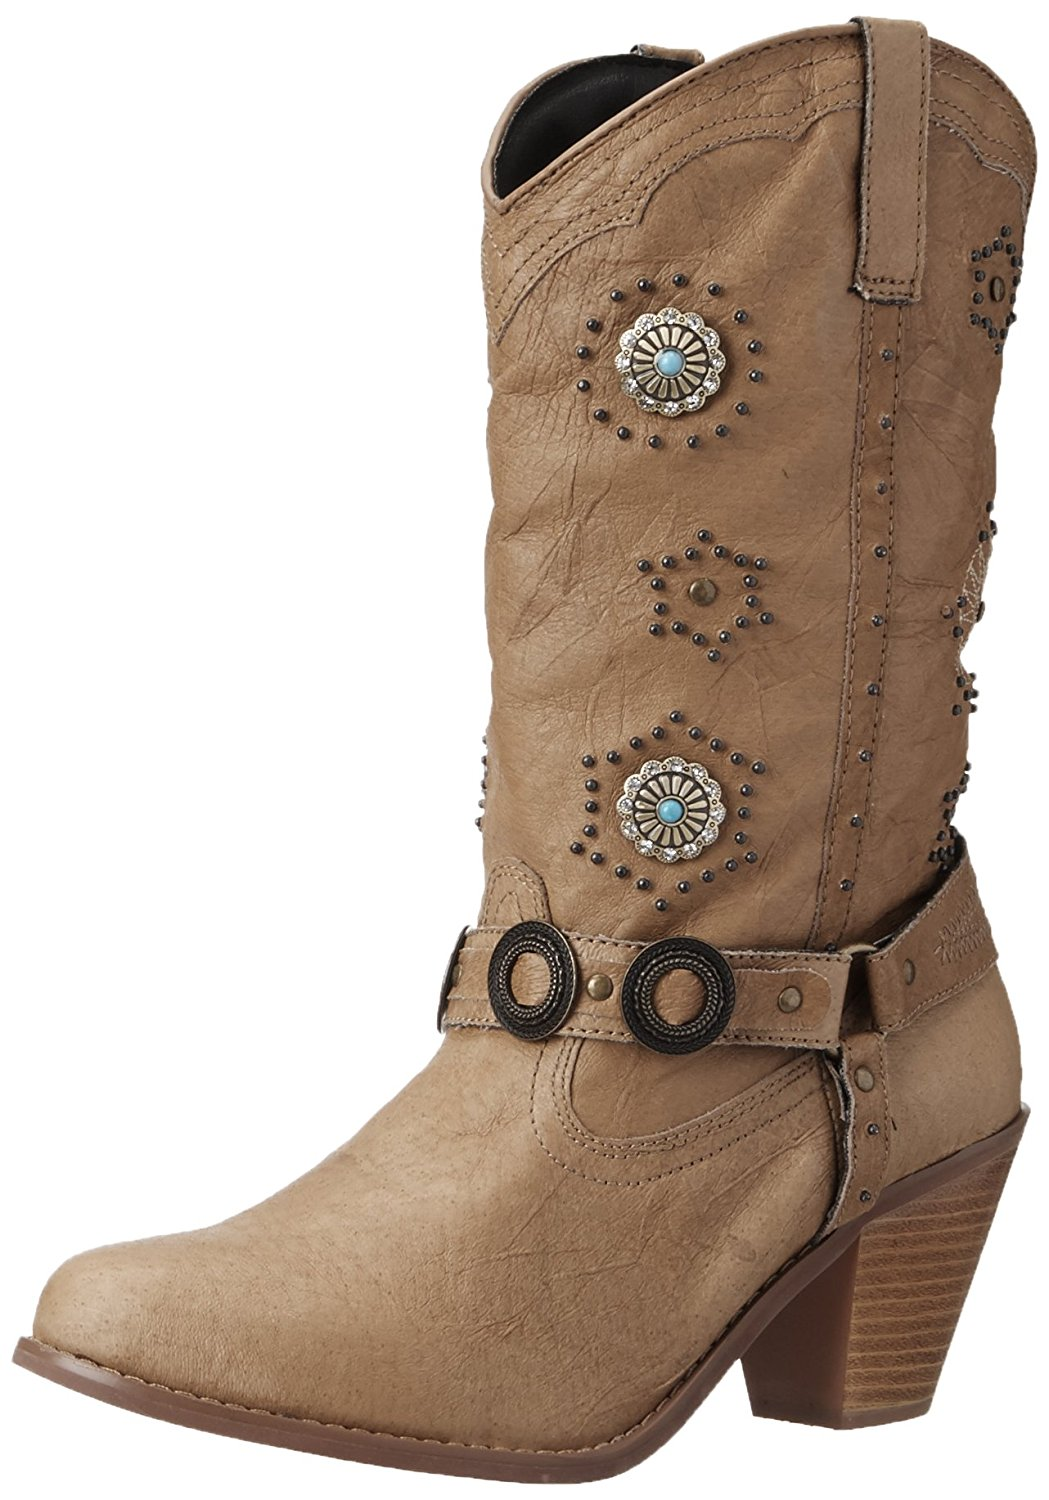 Cheap Dingo Harness Boot, find Dingo Harness Boot deals on line at